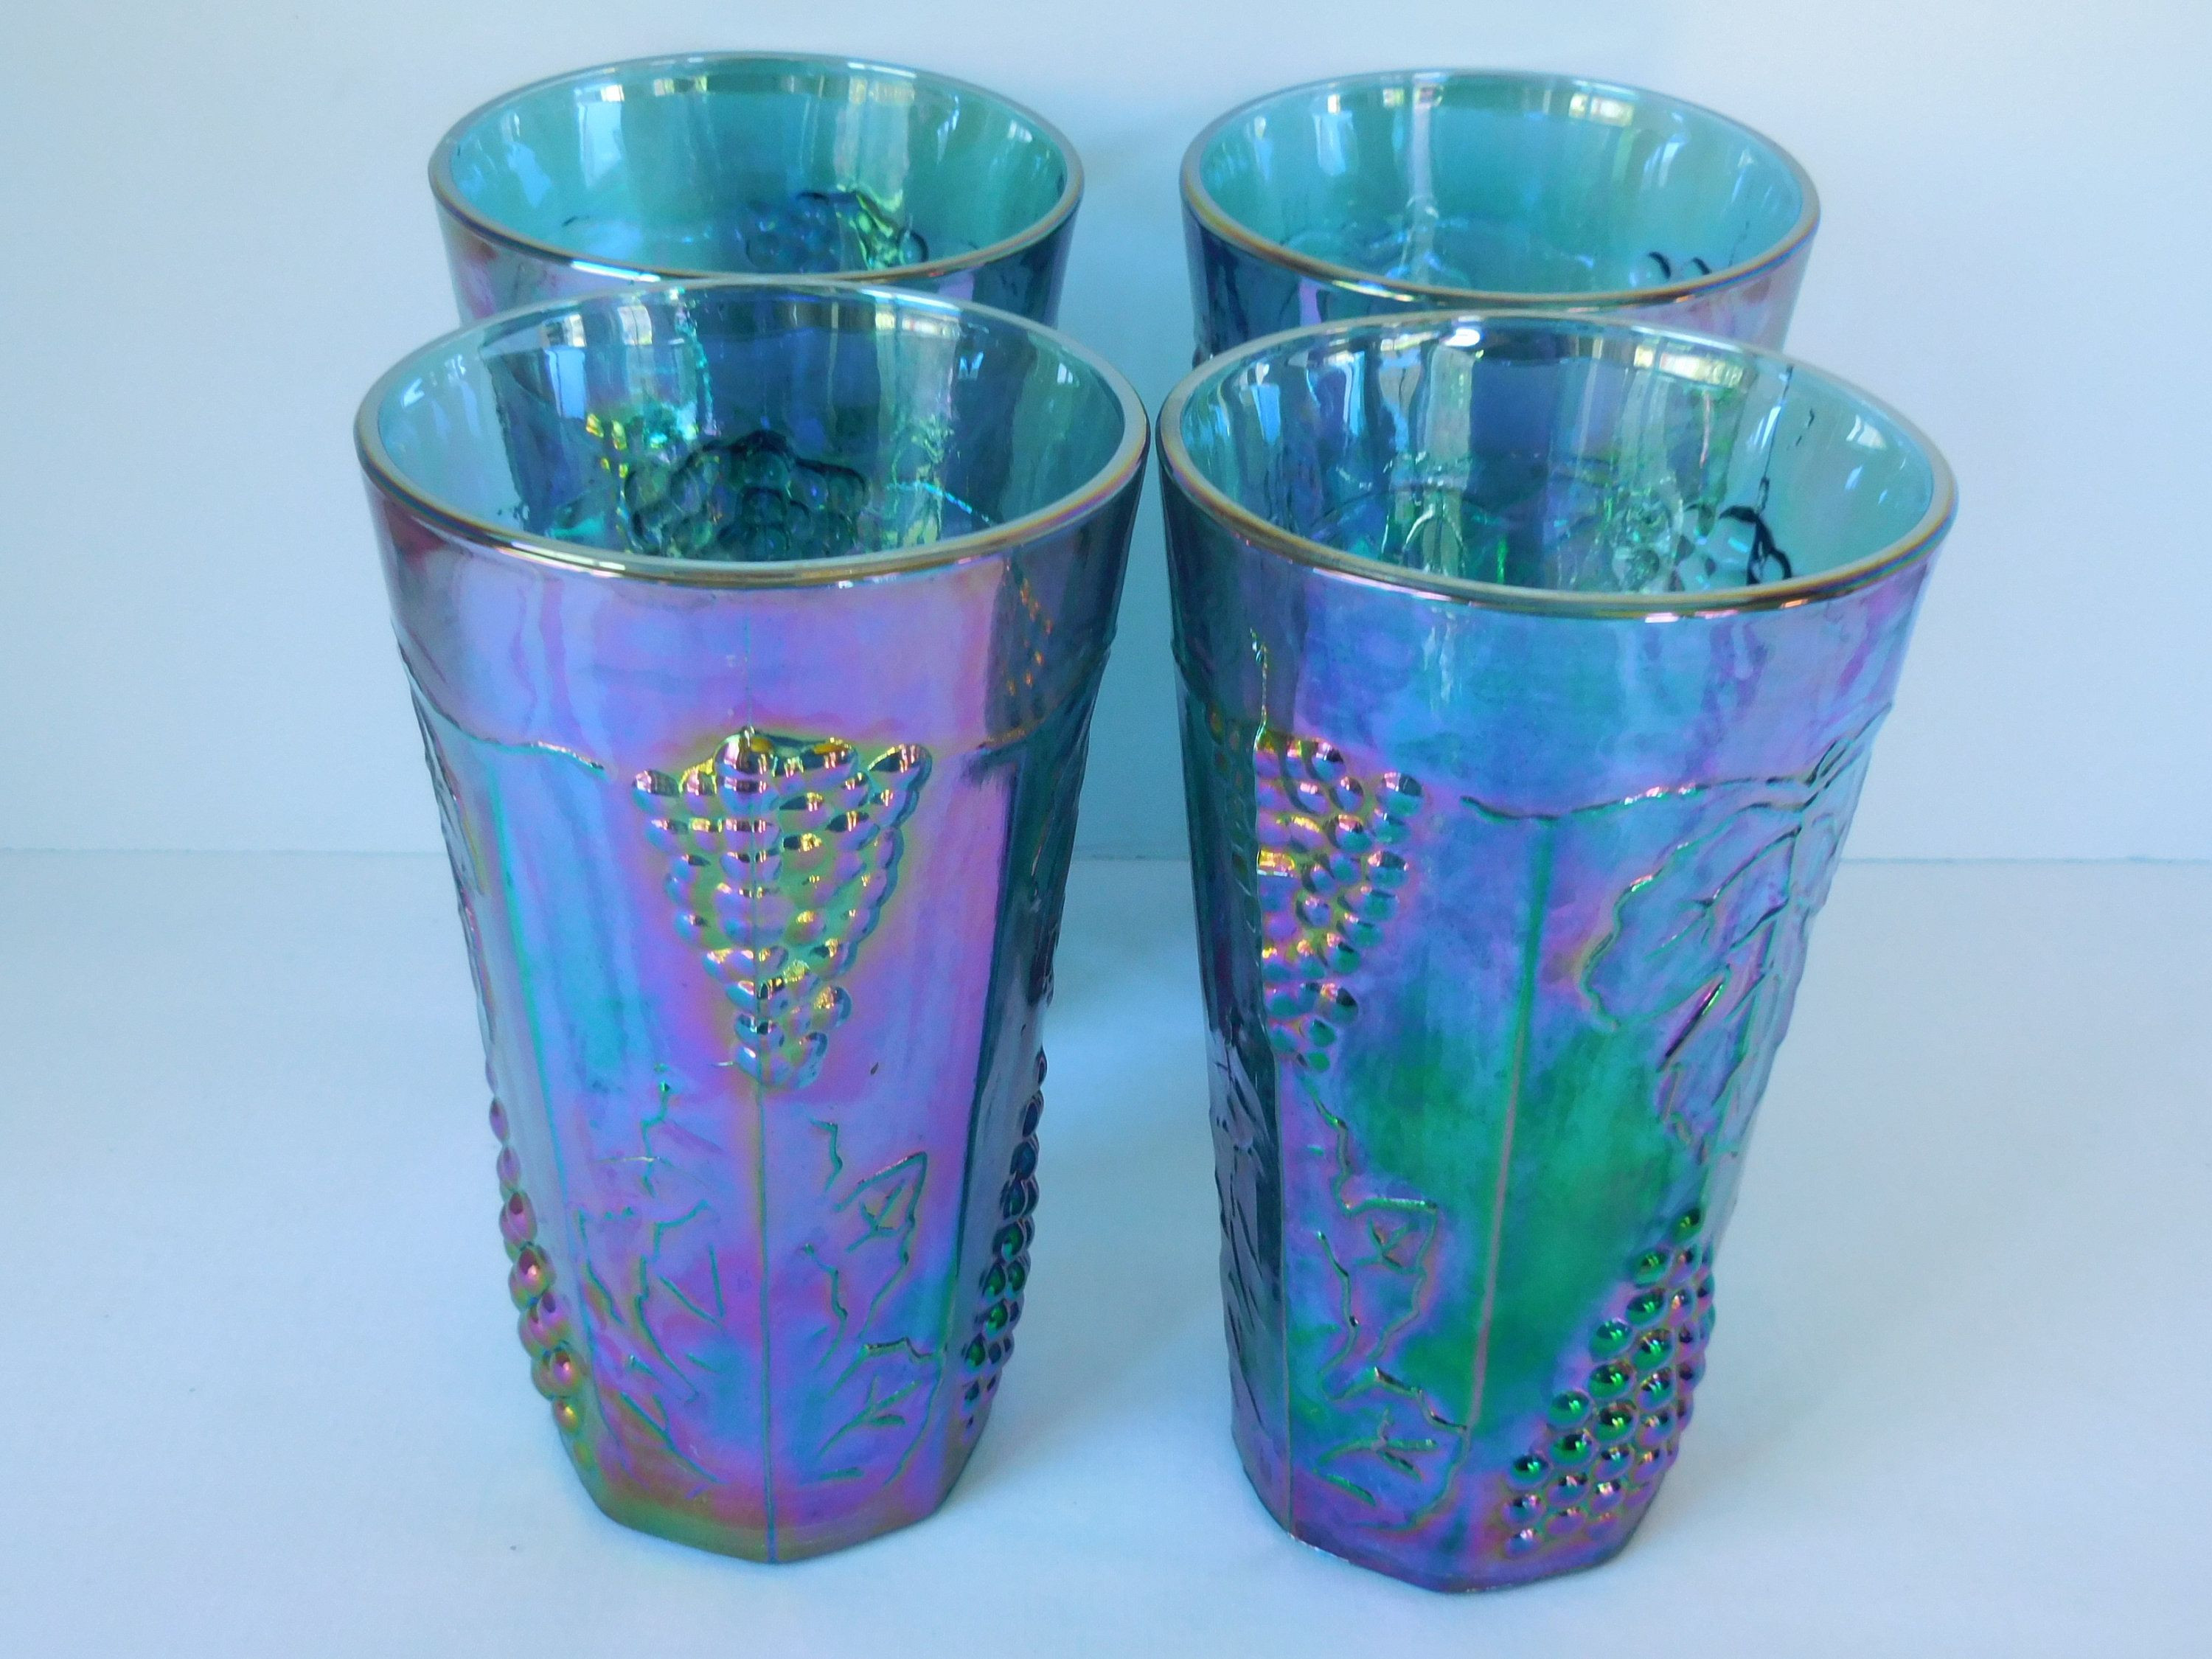 libbey 6 inch cylinder vase of carnival glass blue grape harvest set of four tumblers indiana in carnival glass blue grape harvest set of four tumblers indiana glass co iridescent drinking g